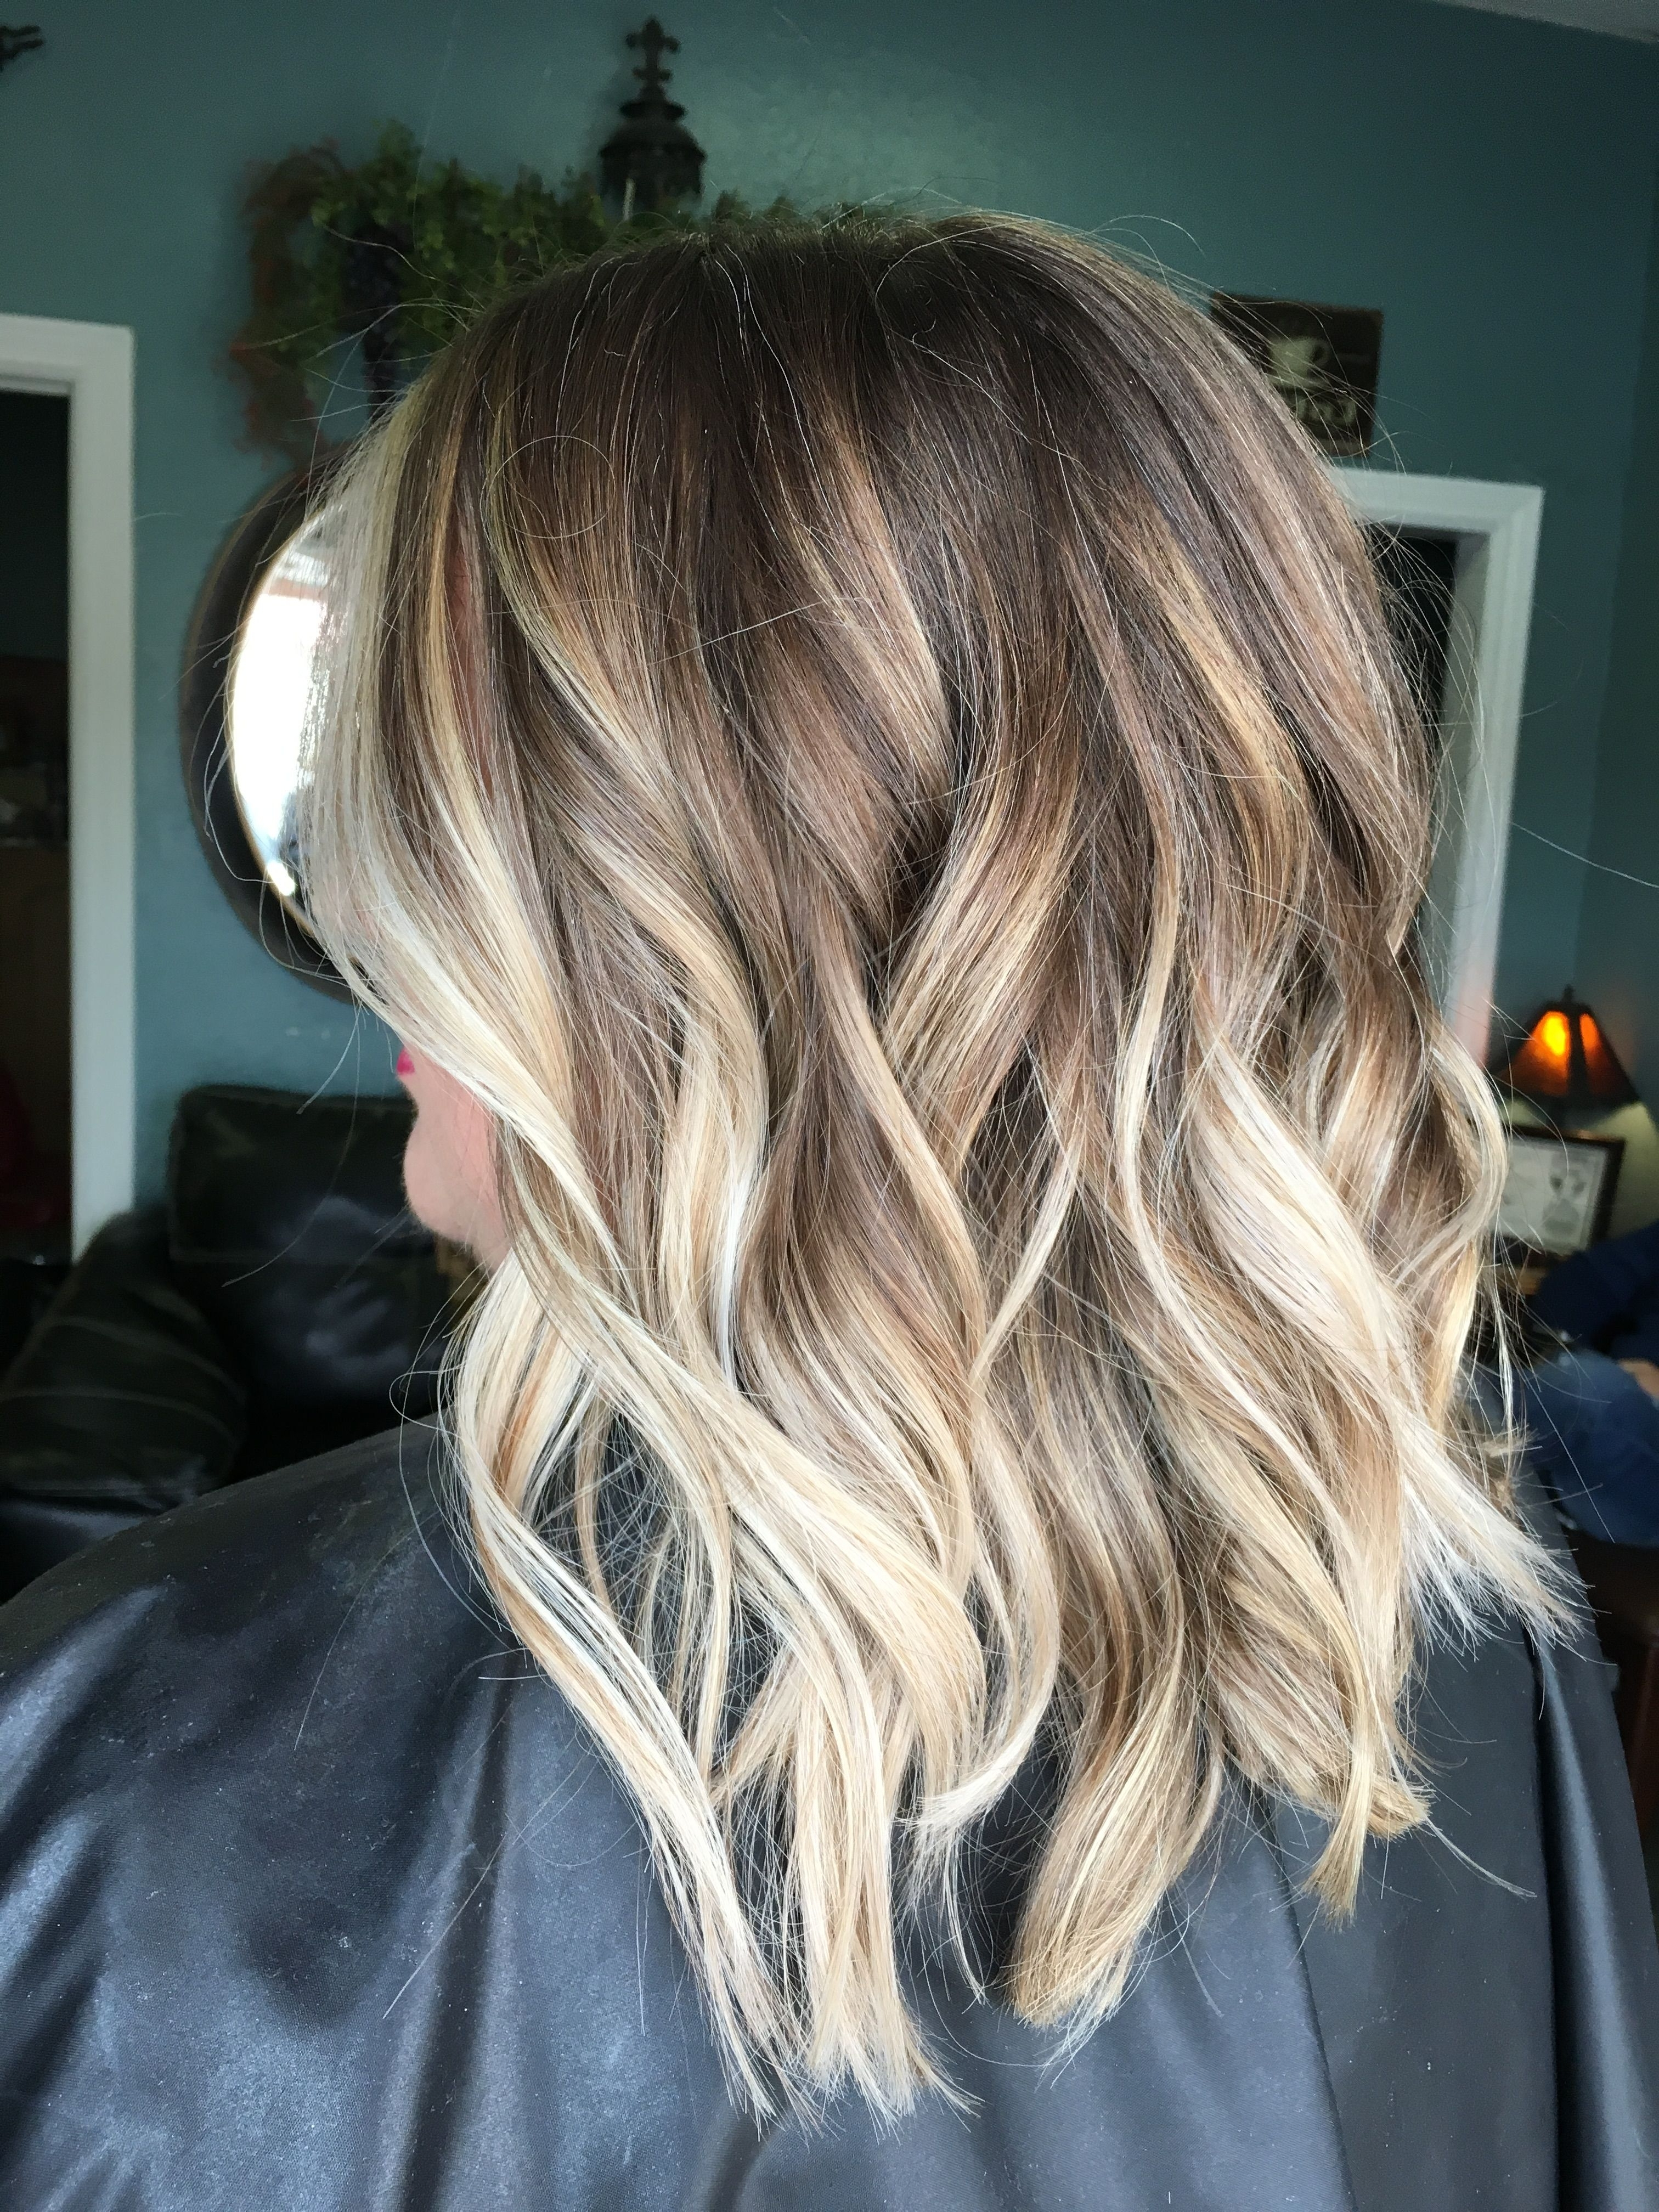 2018 Balayage Blonde Hairstyles With Layered Ends Regarding Balayage, Blonde Hair, Brown Hair, Blonde Highlights, Lob, Bob (View 2 of 20)